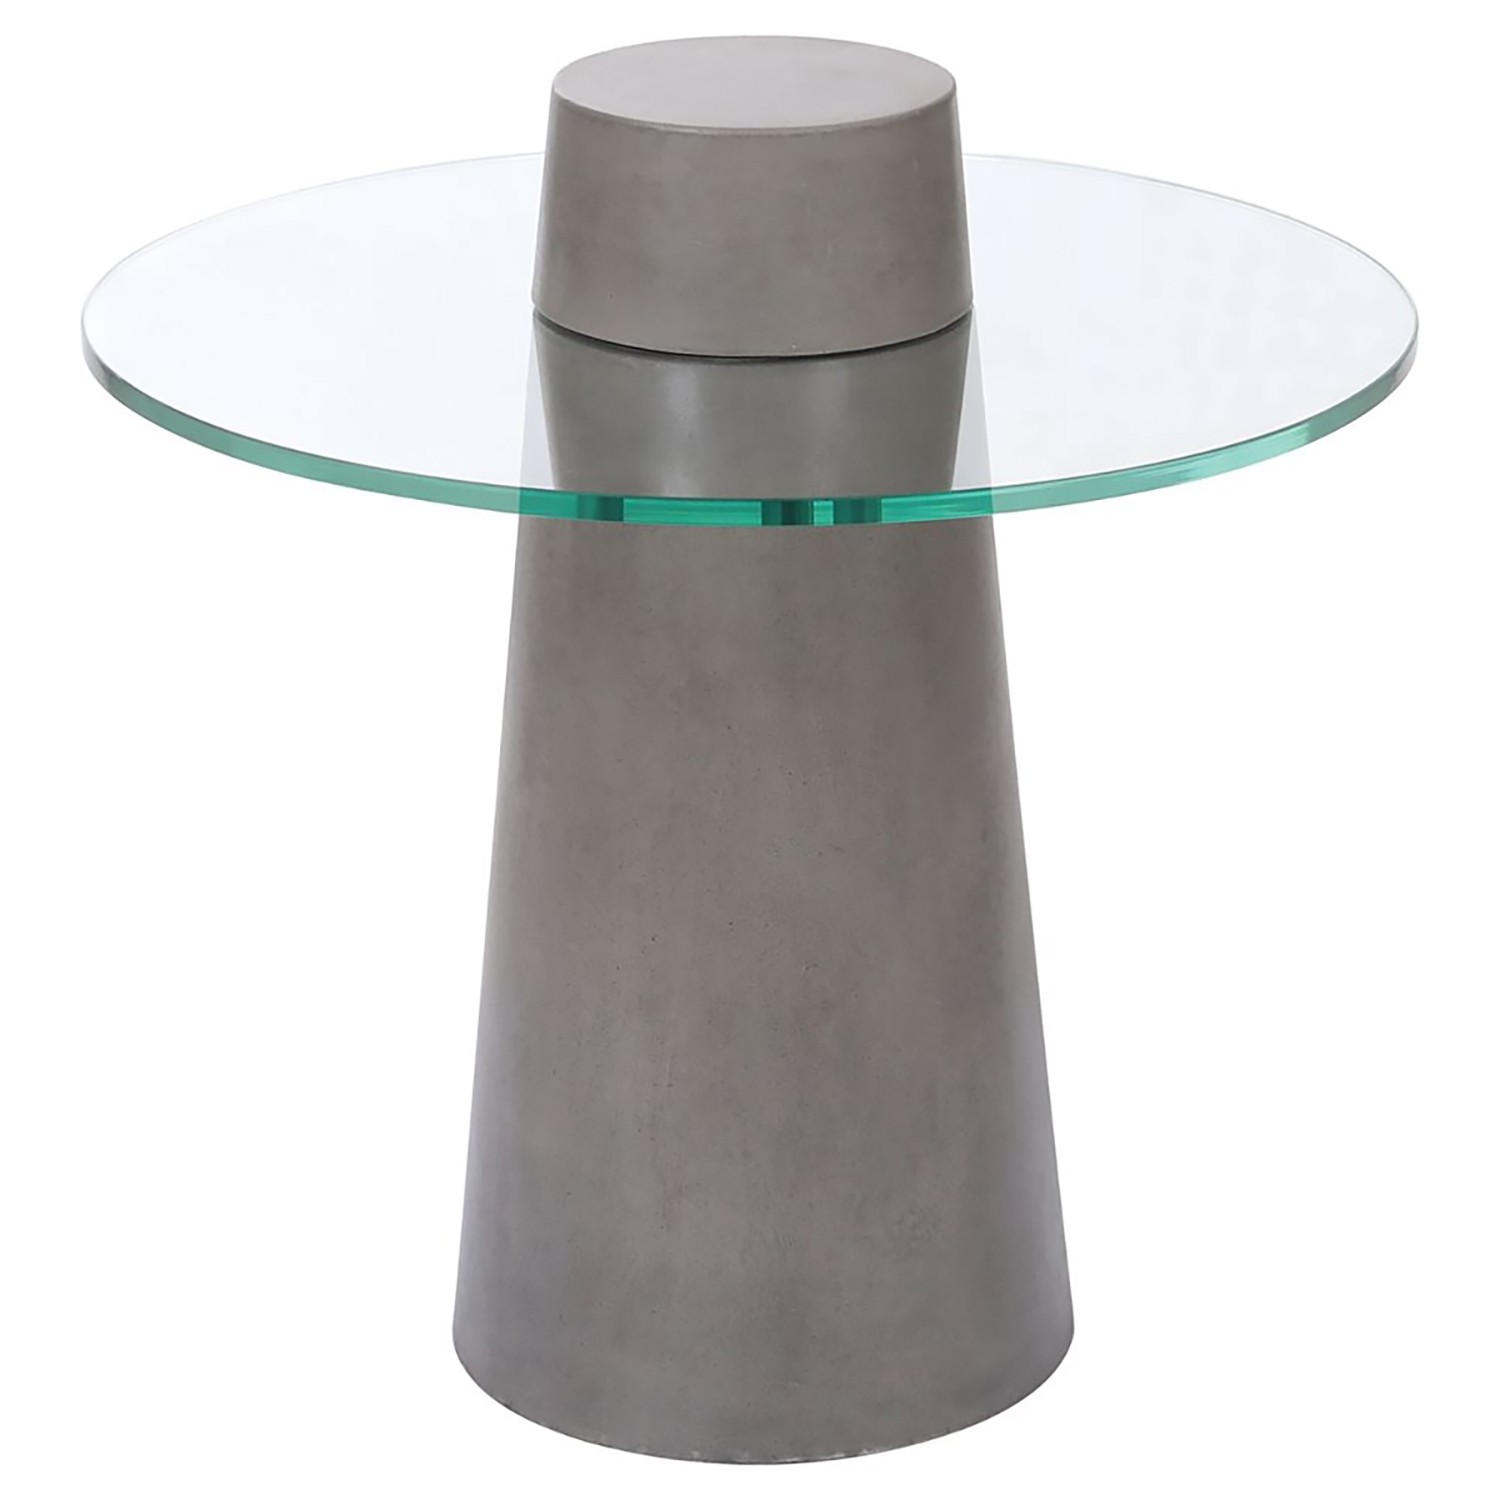 candelabra home onset accent table cone inc zane red outdoor side iconic modern chairs west elm console desk grey coffee and end tables dining room plans sideboard pottery barn